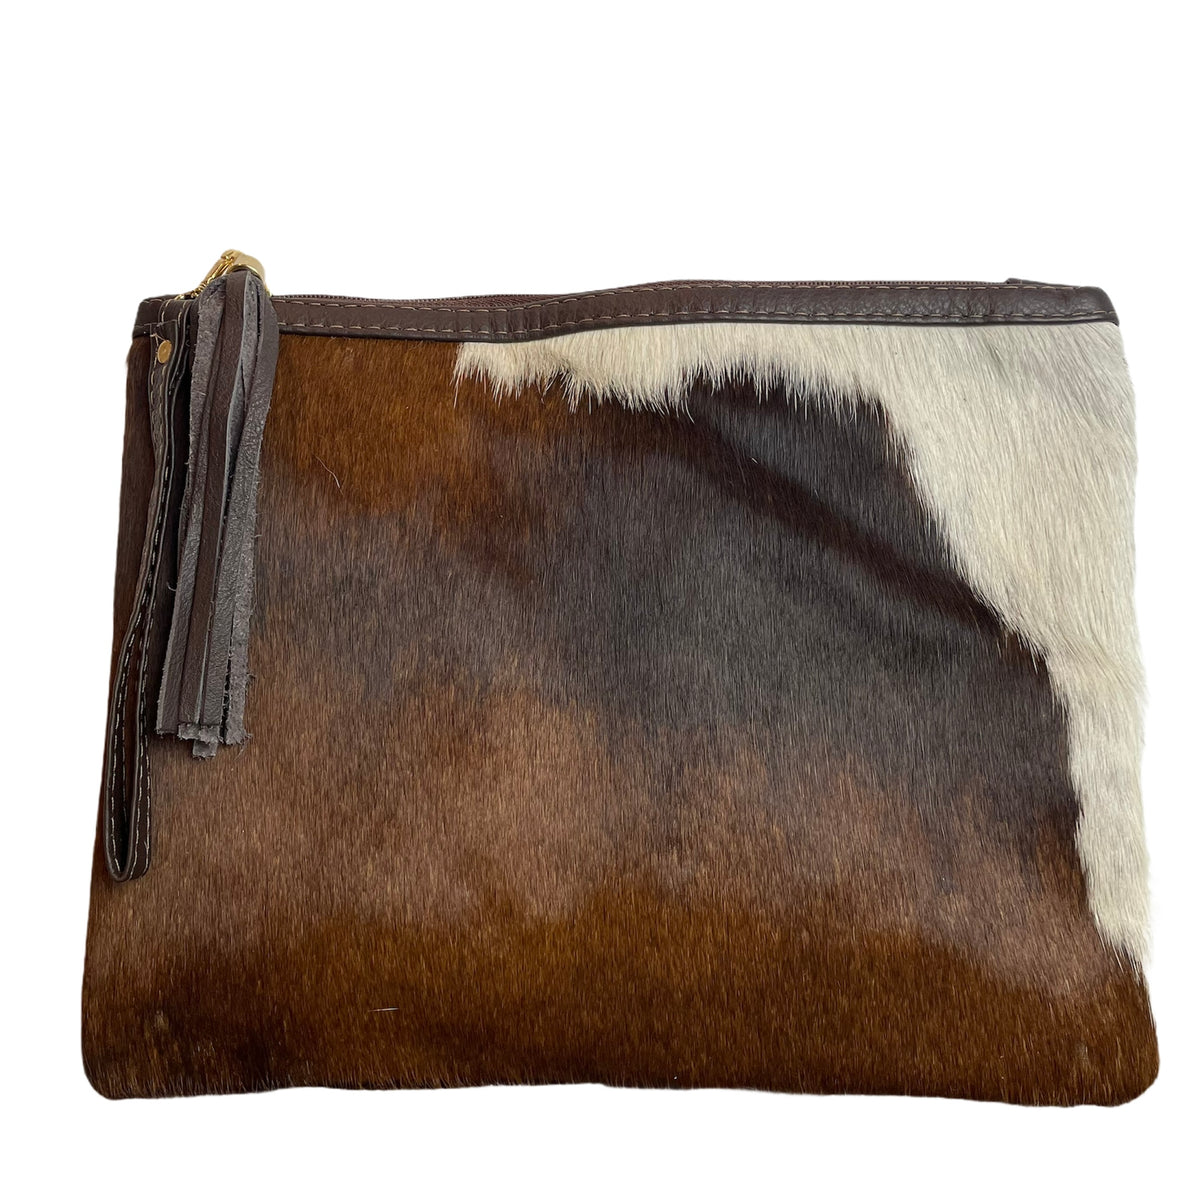 COWHIDE XL STATEMENT CLUTCH - TRICOLOUR. Izel Designs